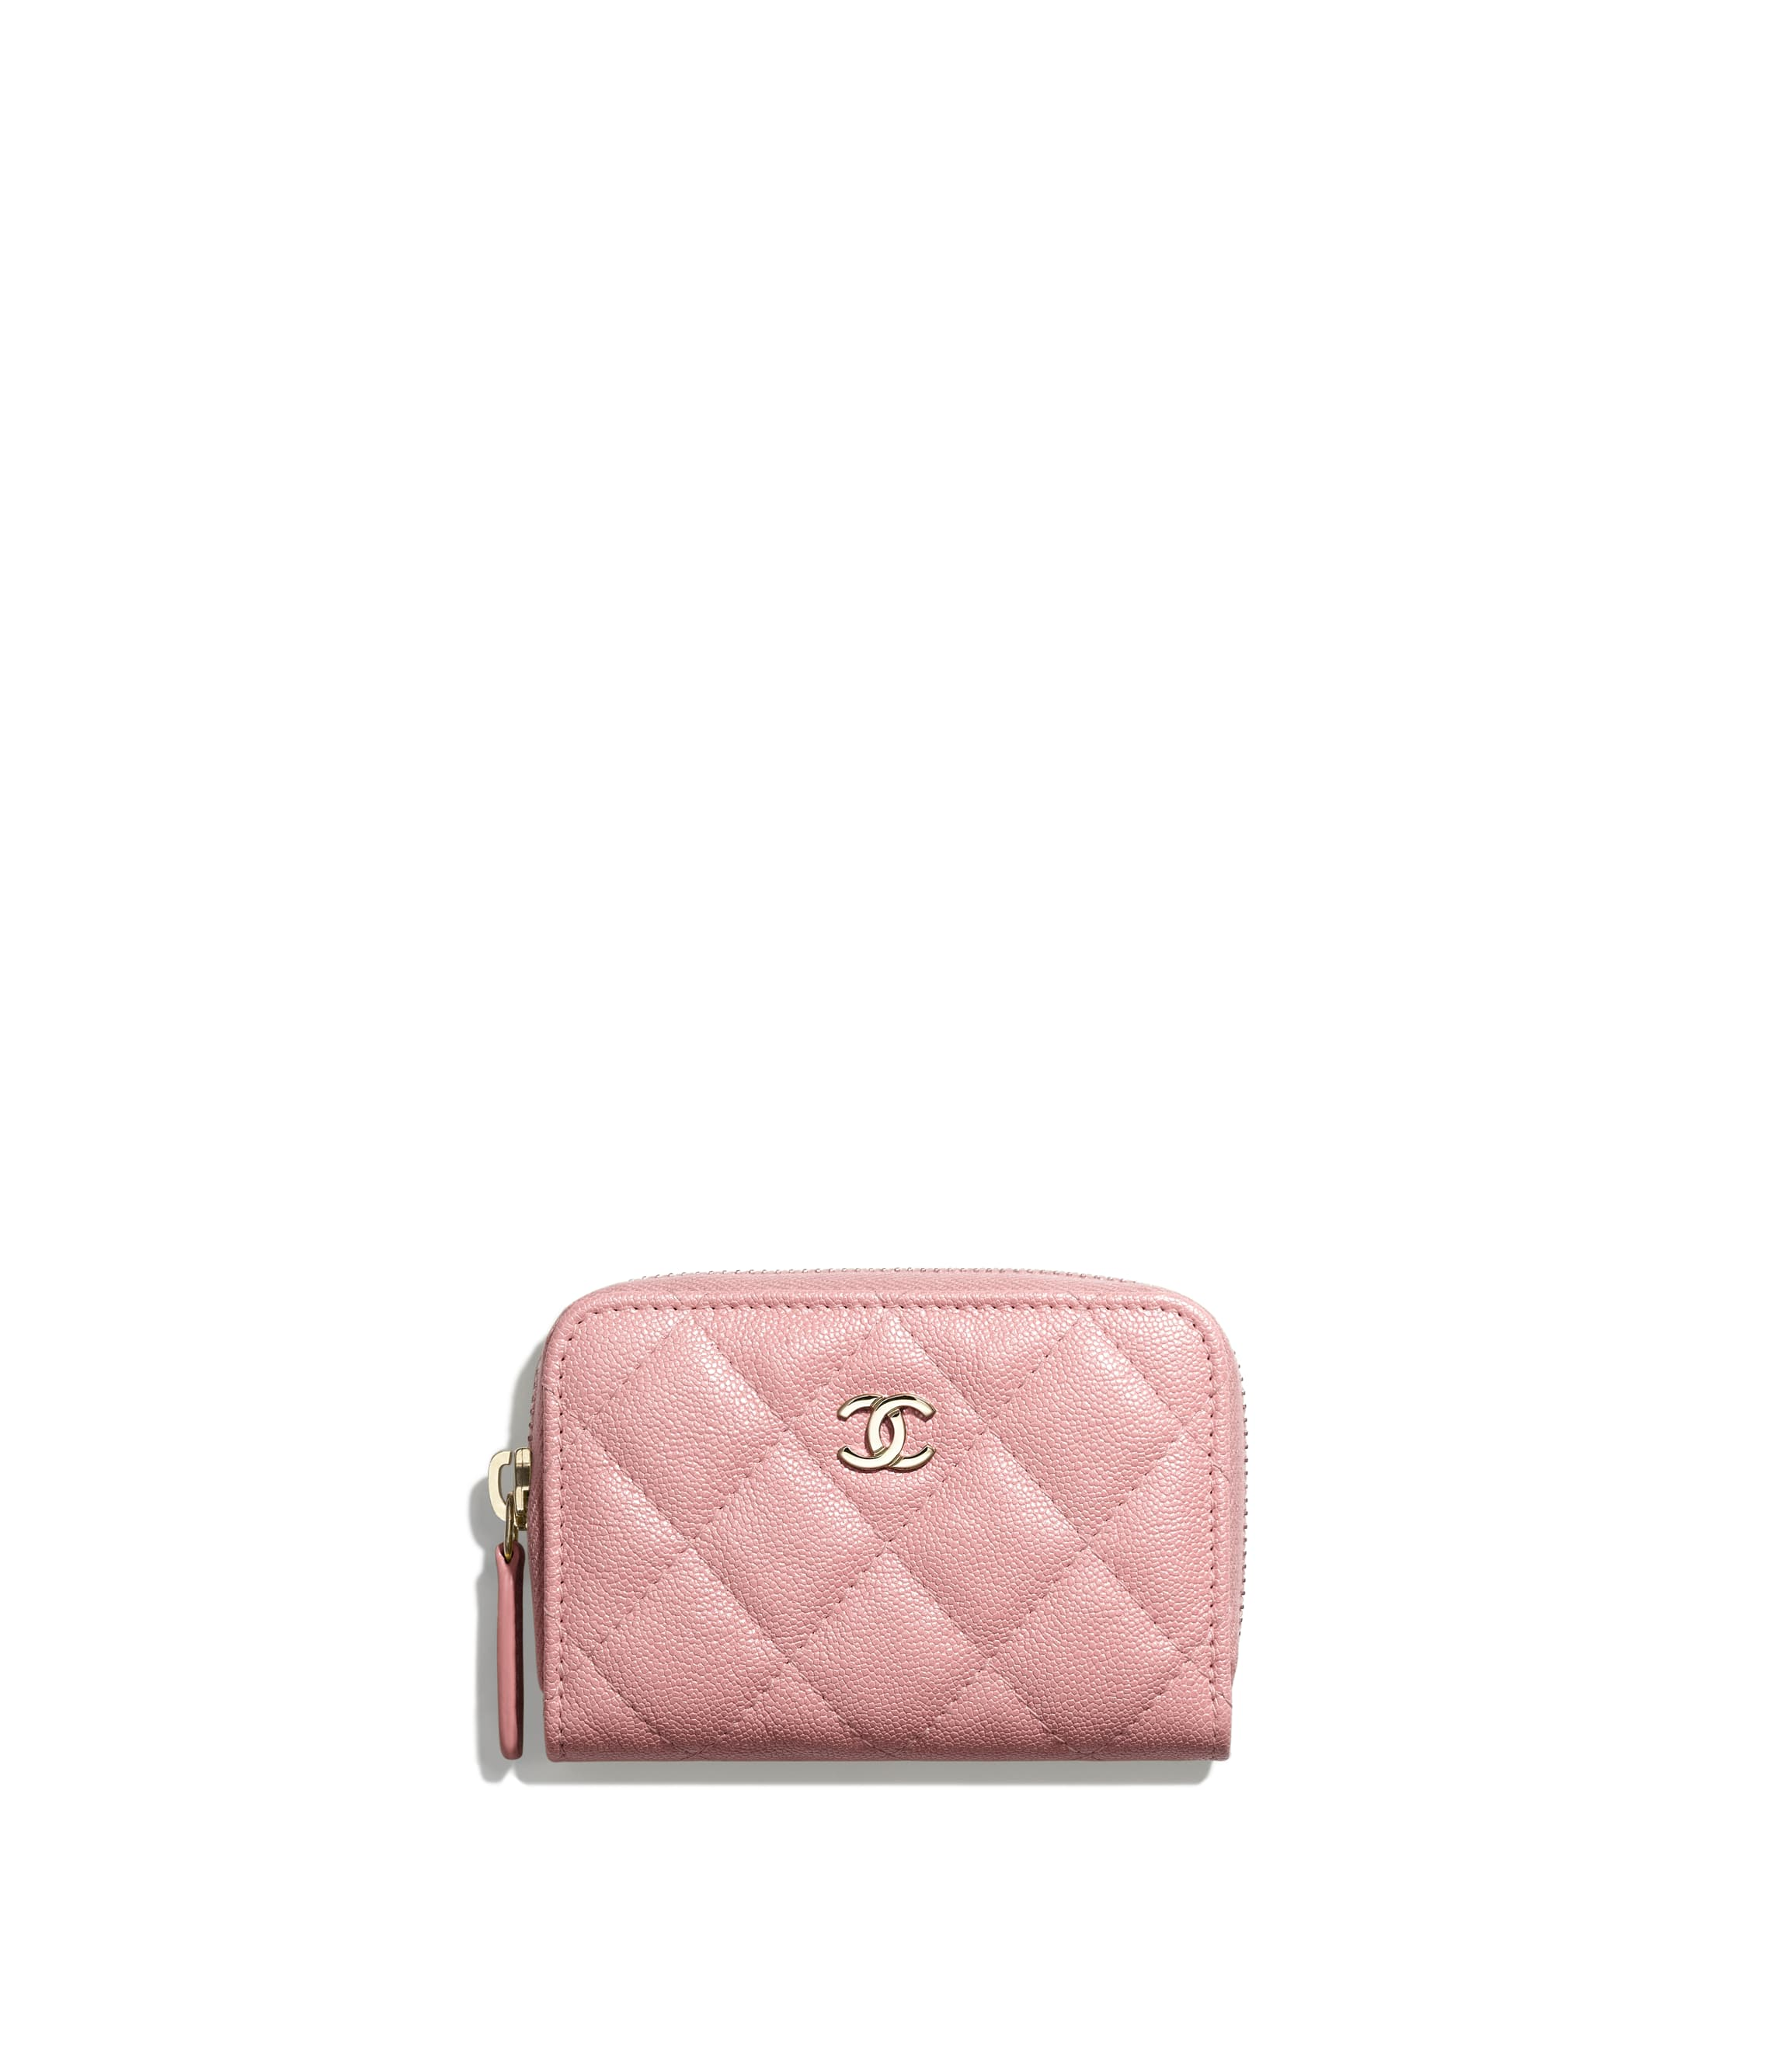 ae372c82bbd1 Card Holders - Small Leather Goods - CHANEL